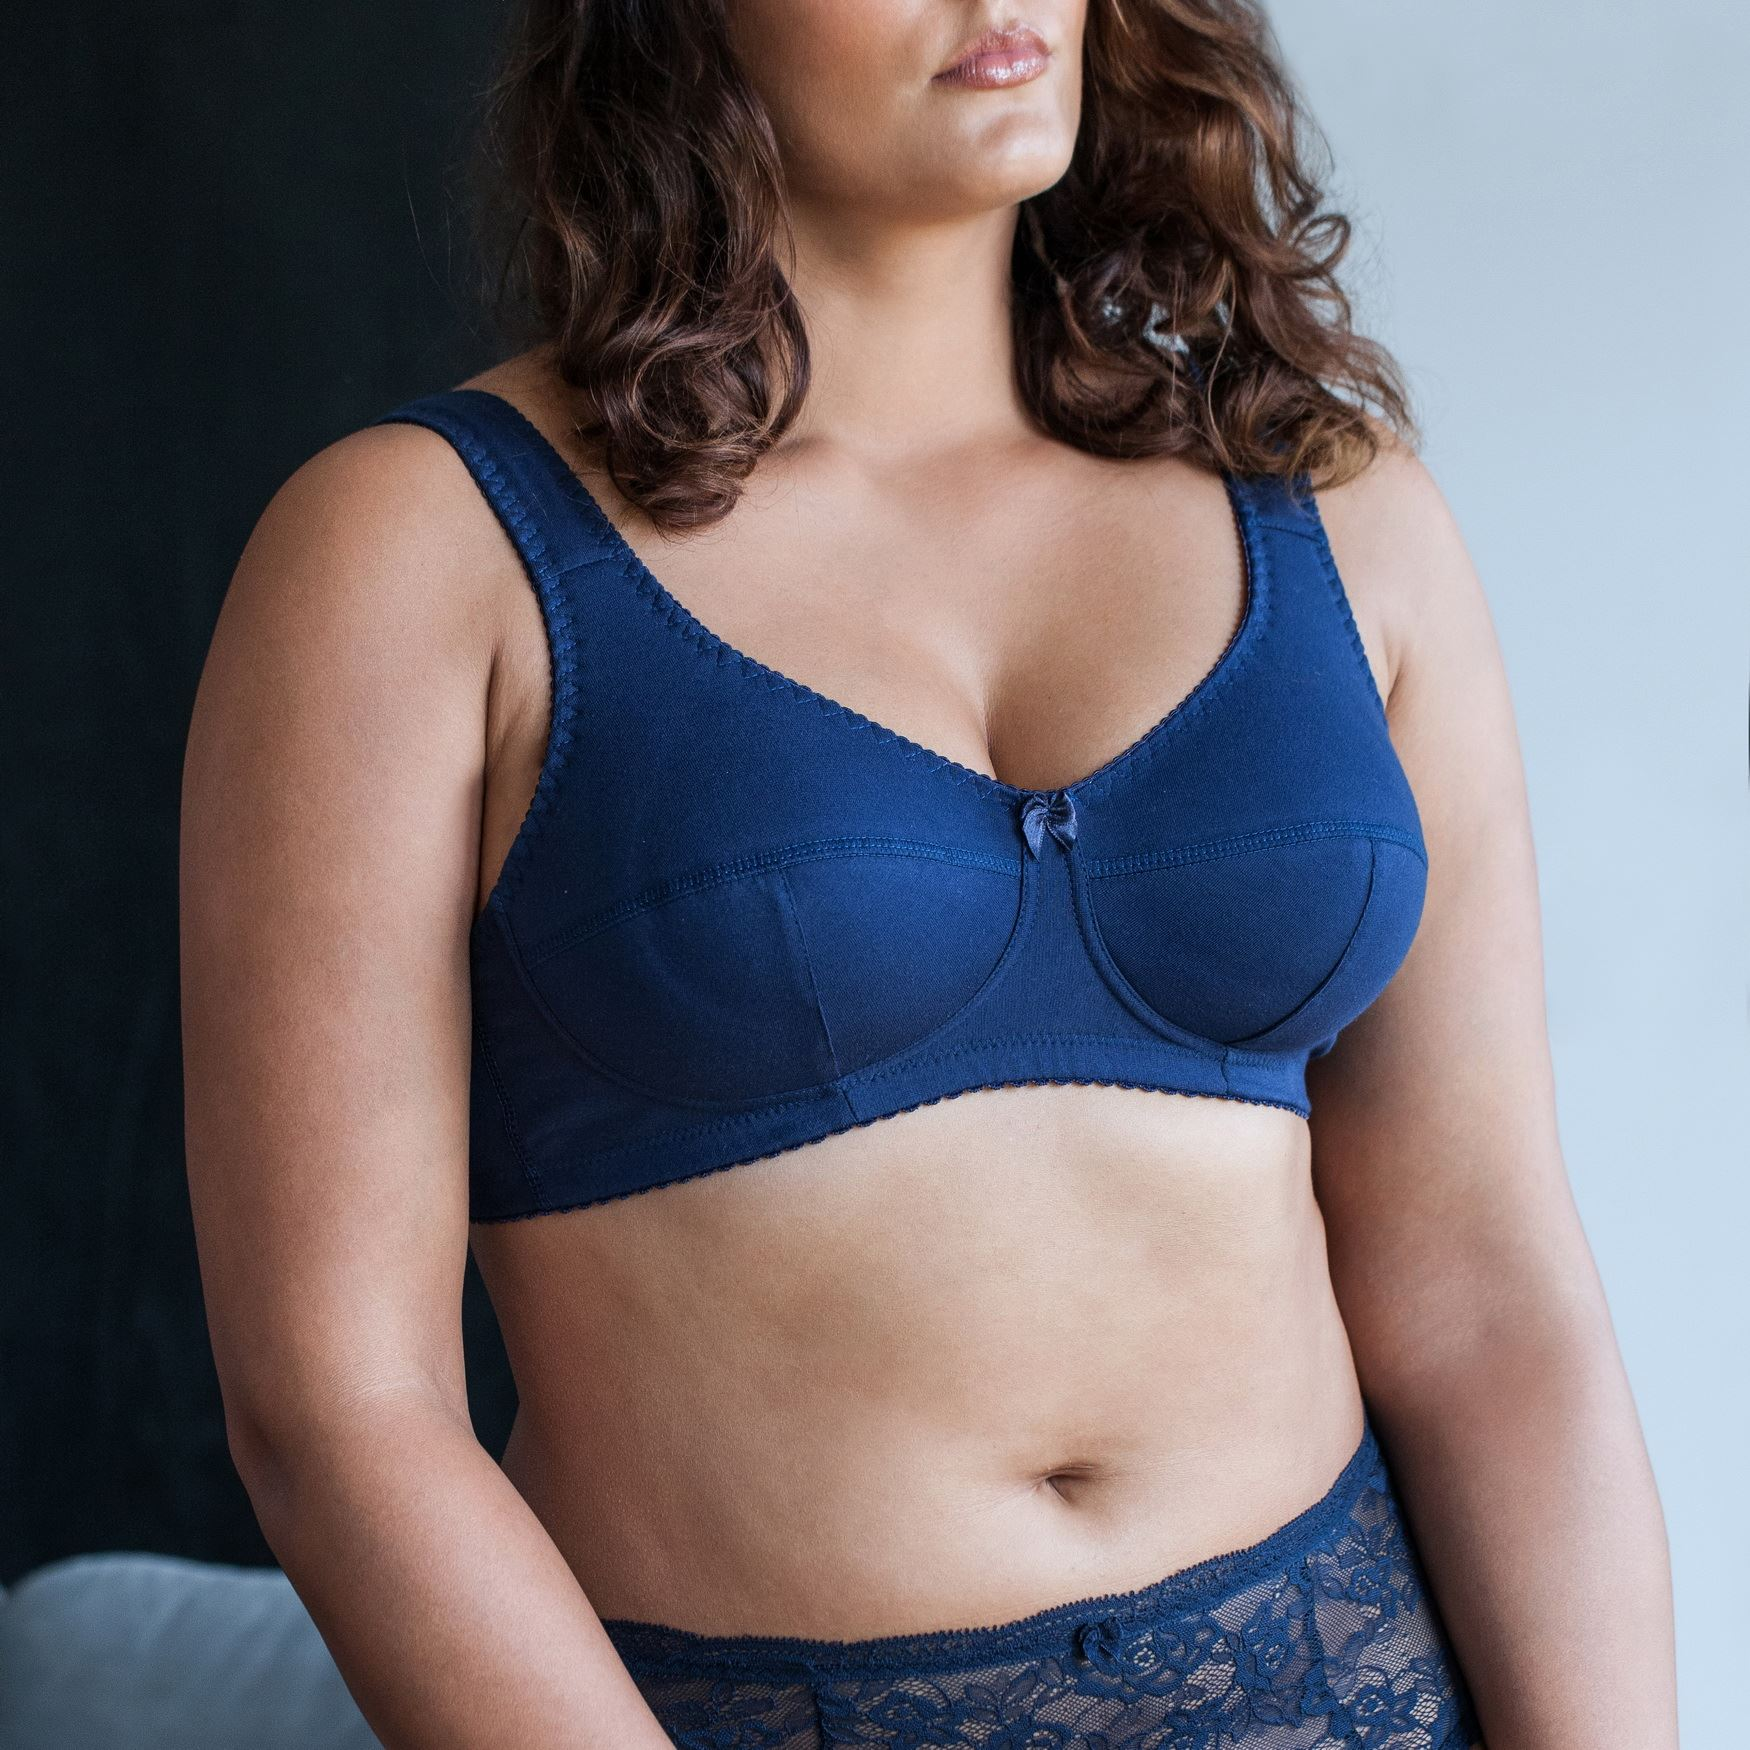 Cotton-Wireless-Plus-Size-Full-Coverage-Sleep-Unlined-Minimizer-Figure-Bra thumbnail 8